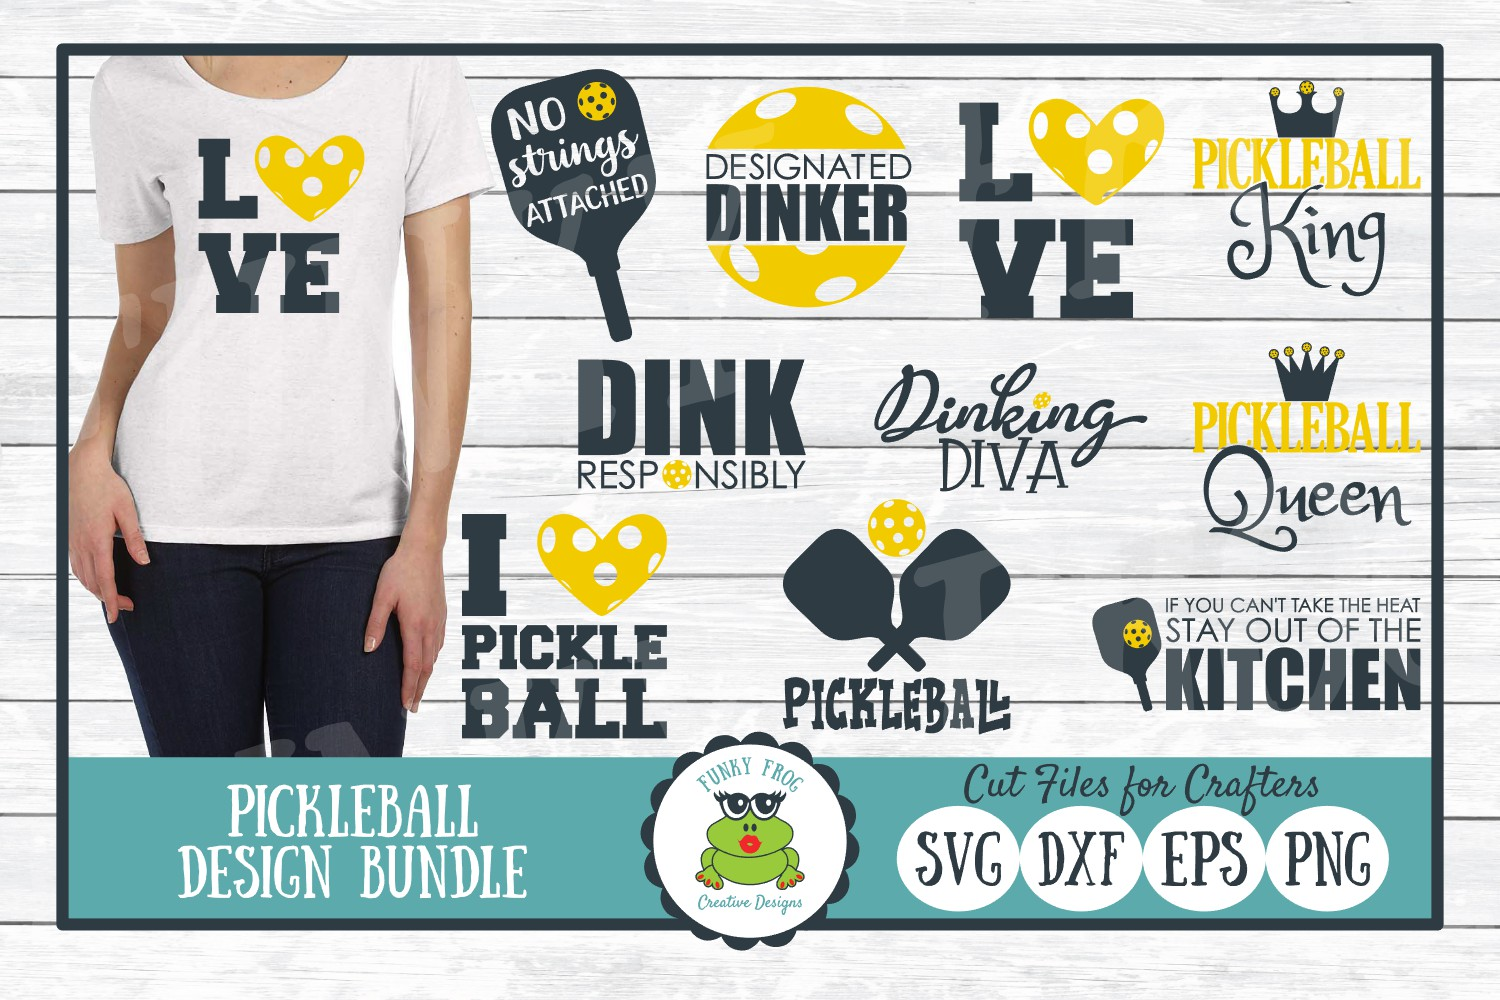 Download Free Pickleball Design Bundle Graphic By Funkyfrogcreativedesigns for Cricut Explore, Silhouette and other cutting machines.